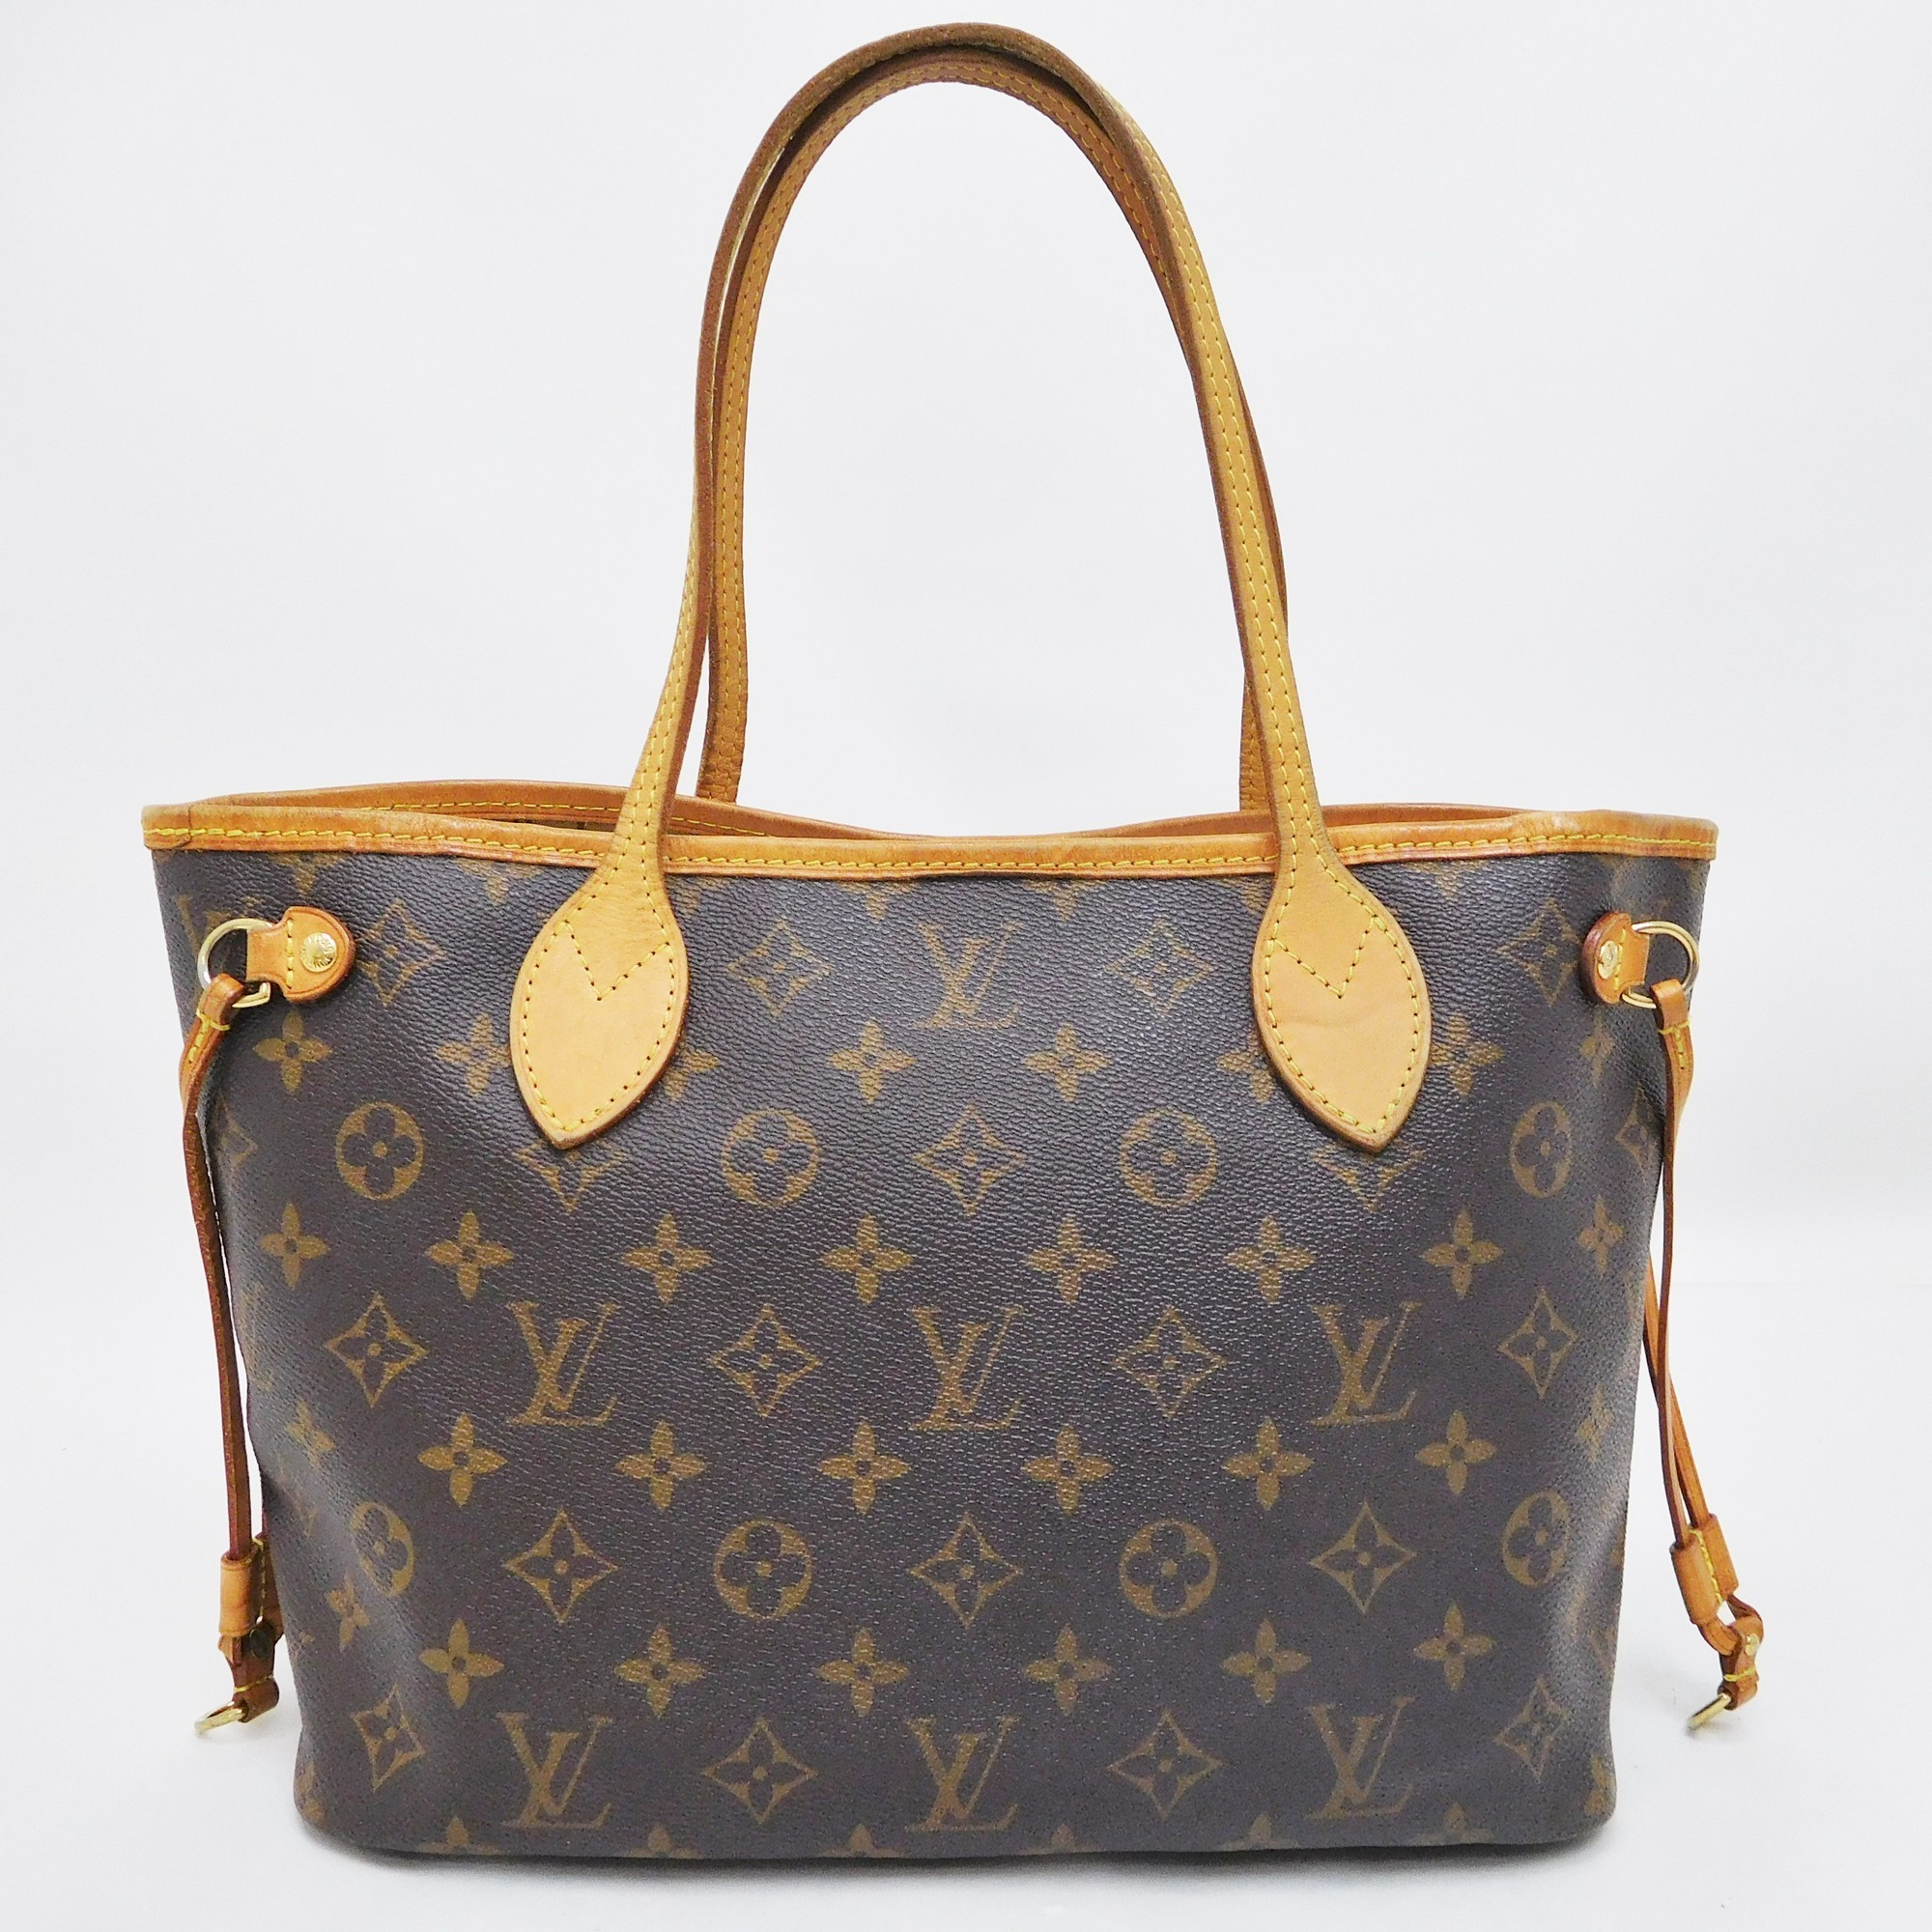 Auth Louis Vuitton Monogram Neverfull PM M40155 Women s Tote Bag Brown a572940a1bea2